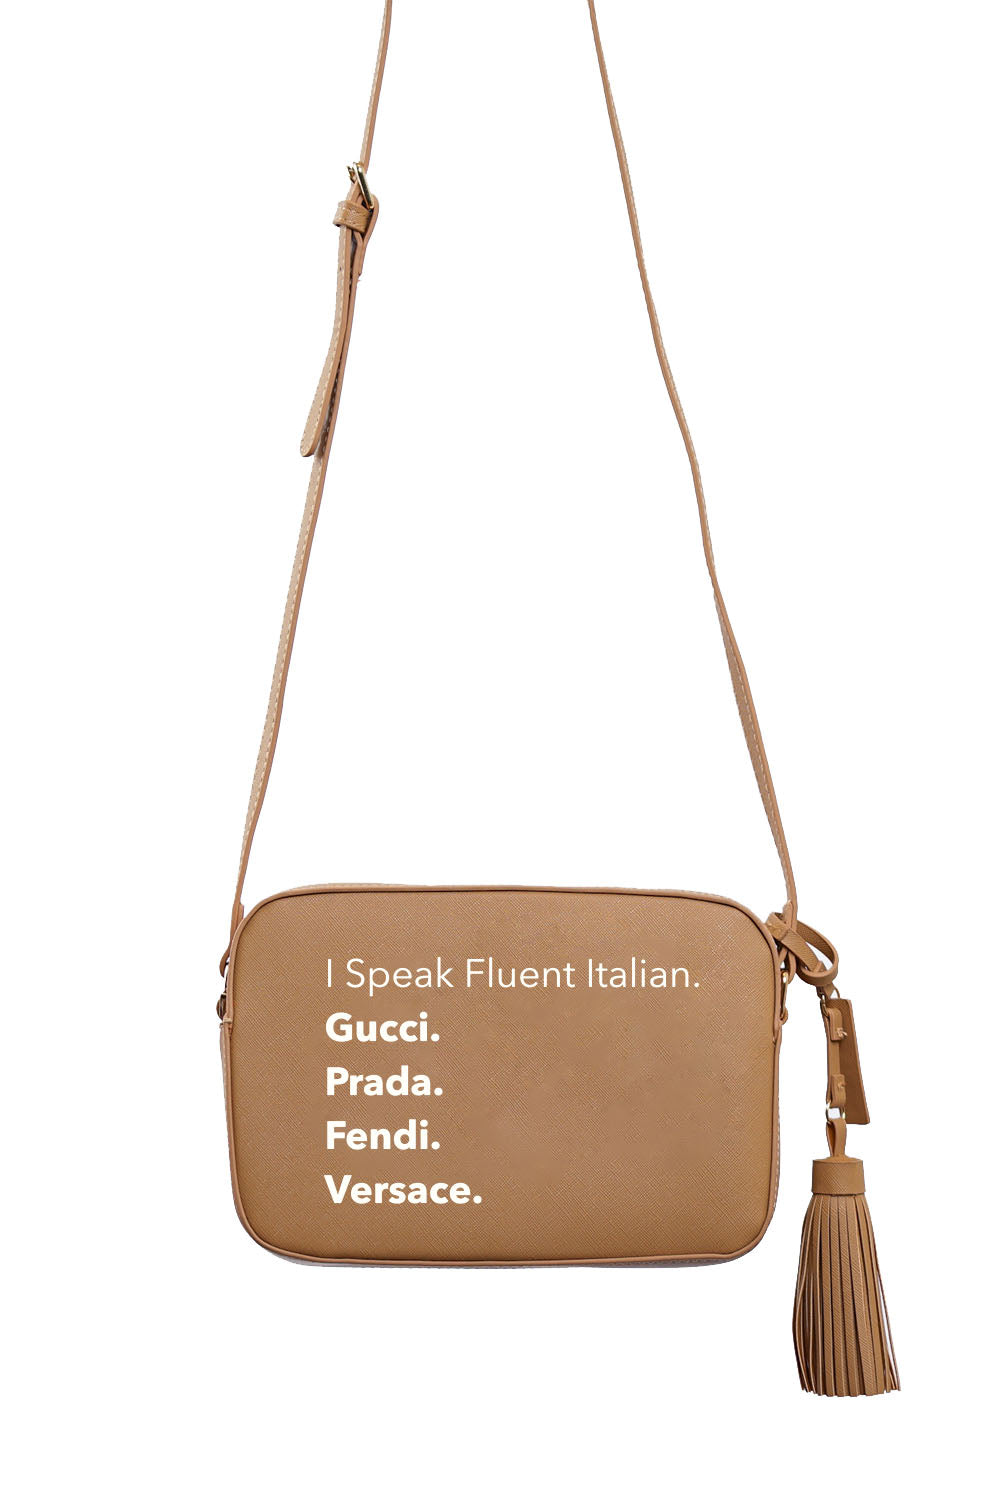 VEGAN CROSSBODY BAG - Fluent Italian (Tan)